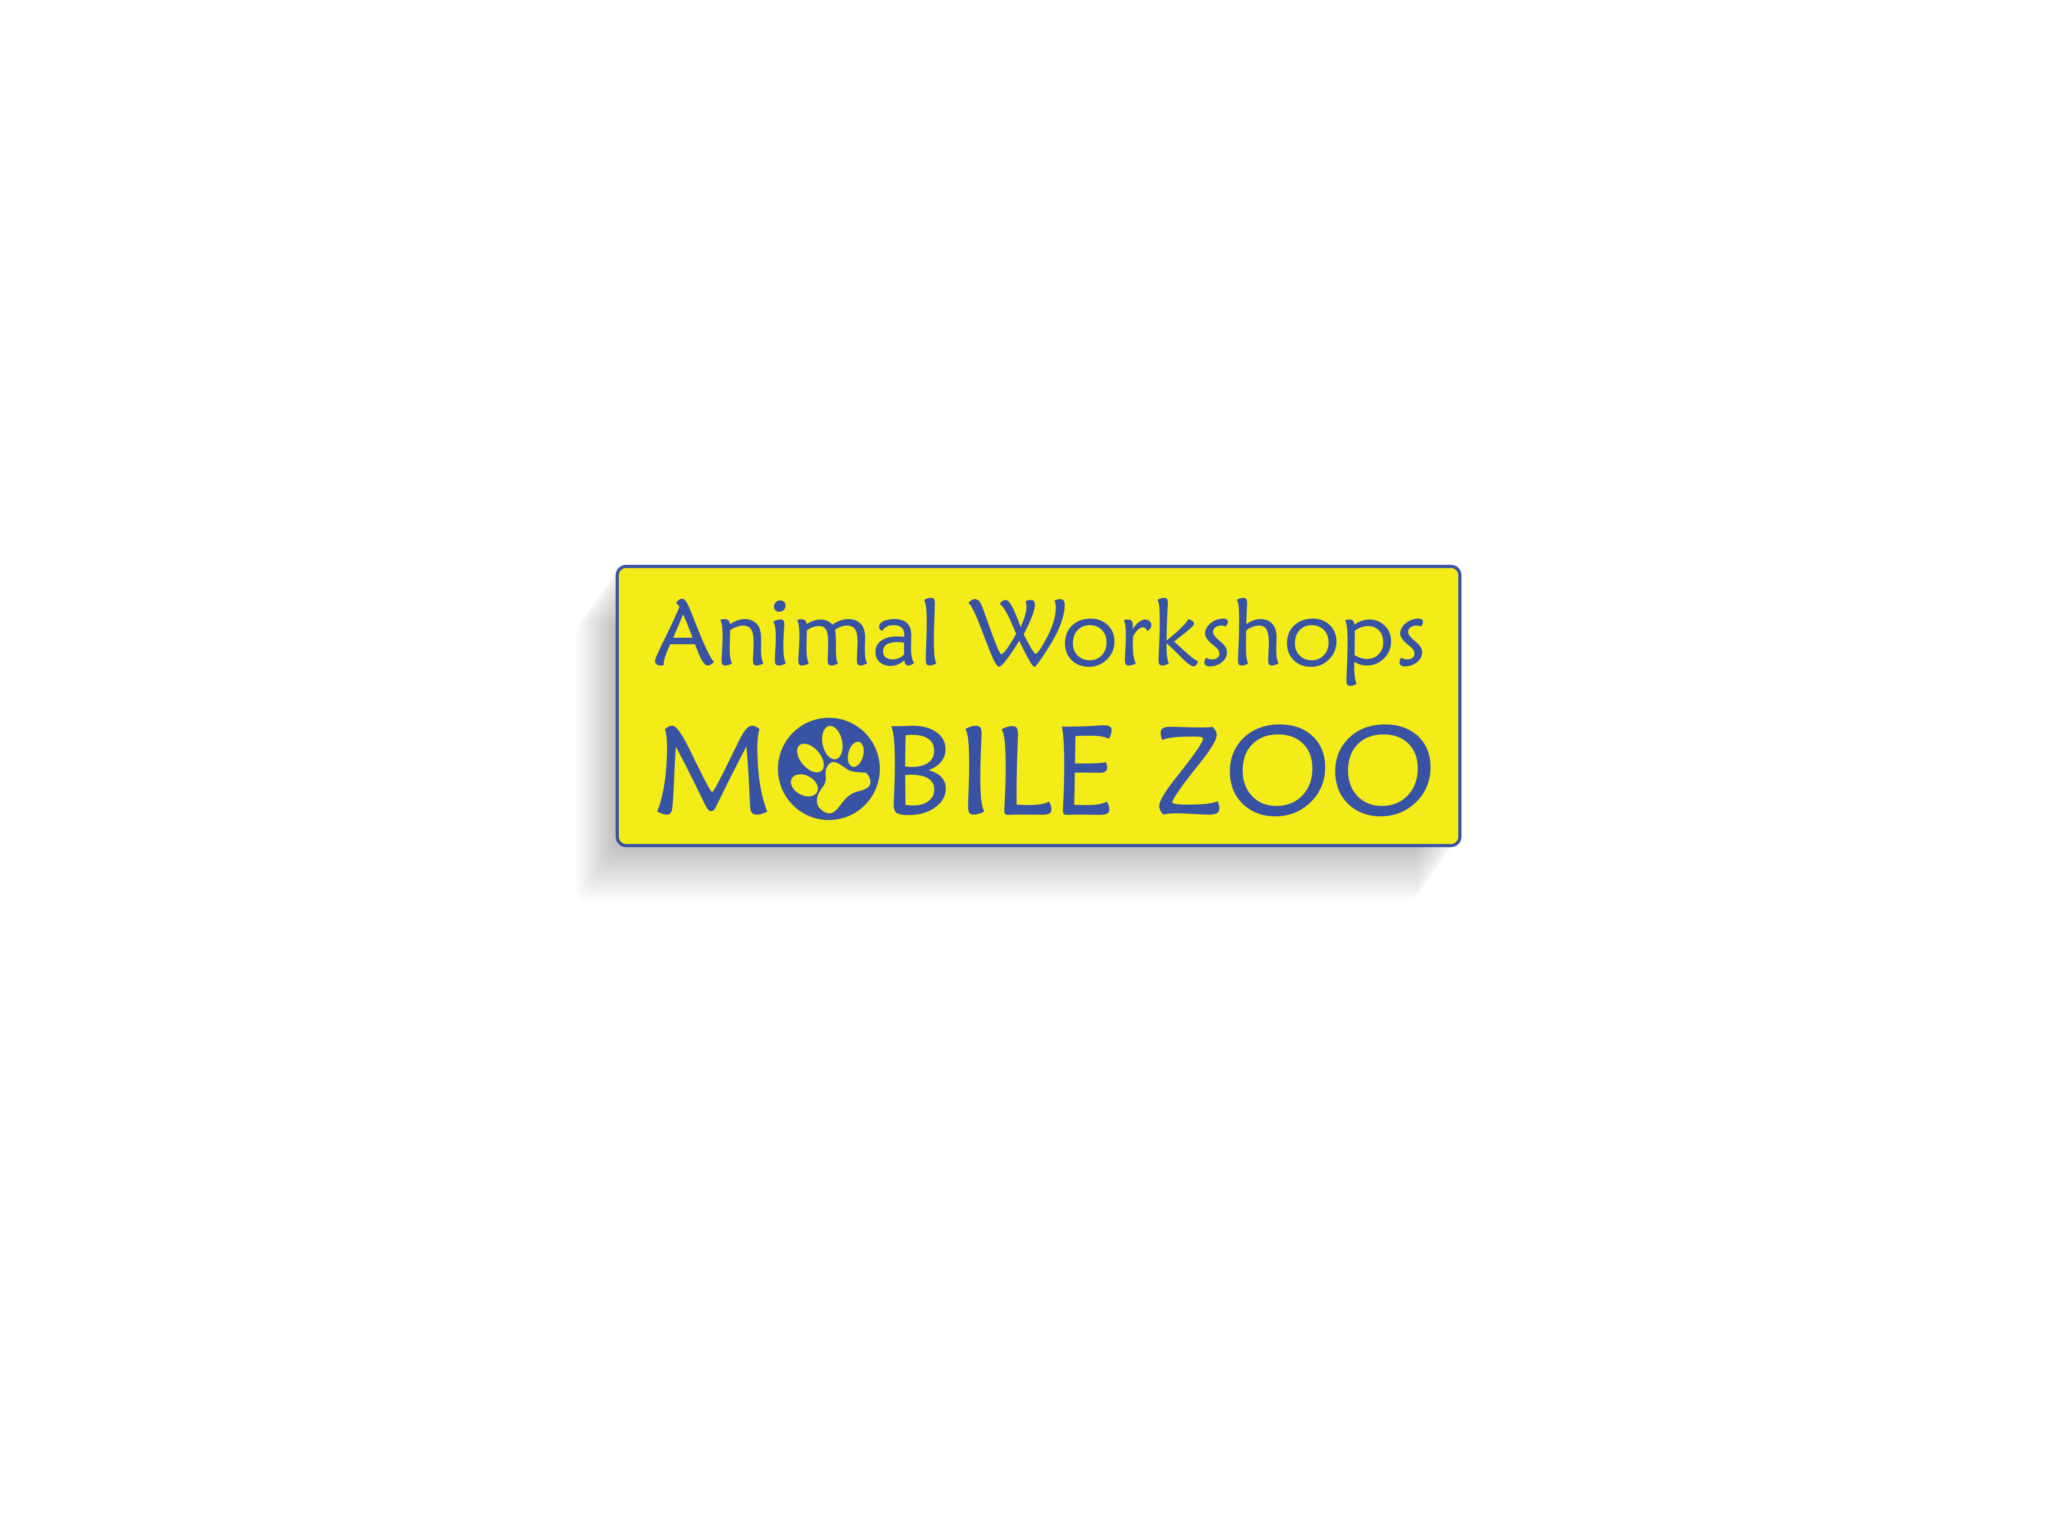 Animal Workshops Logo Design